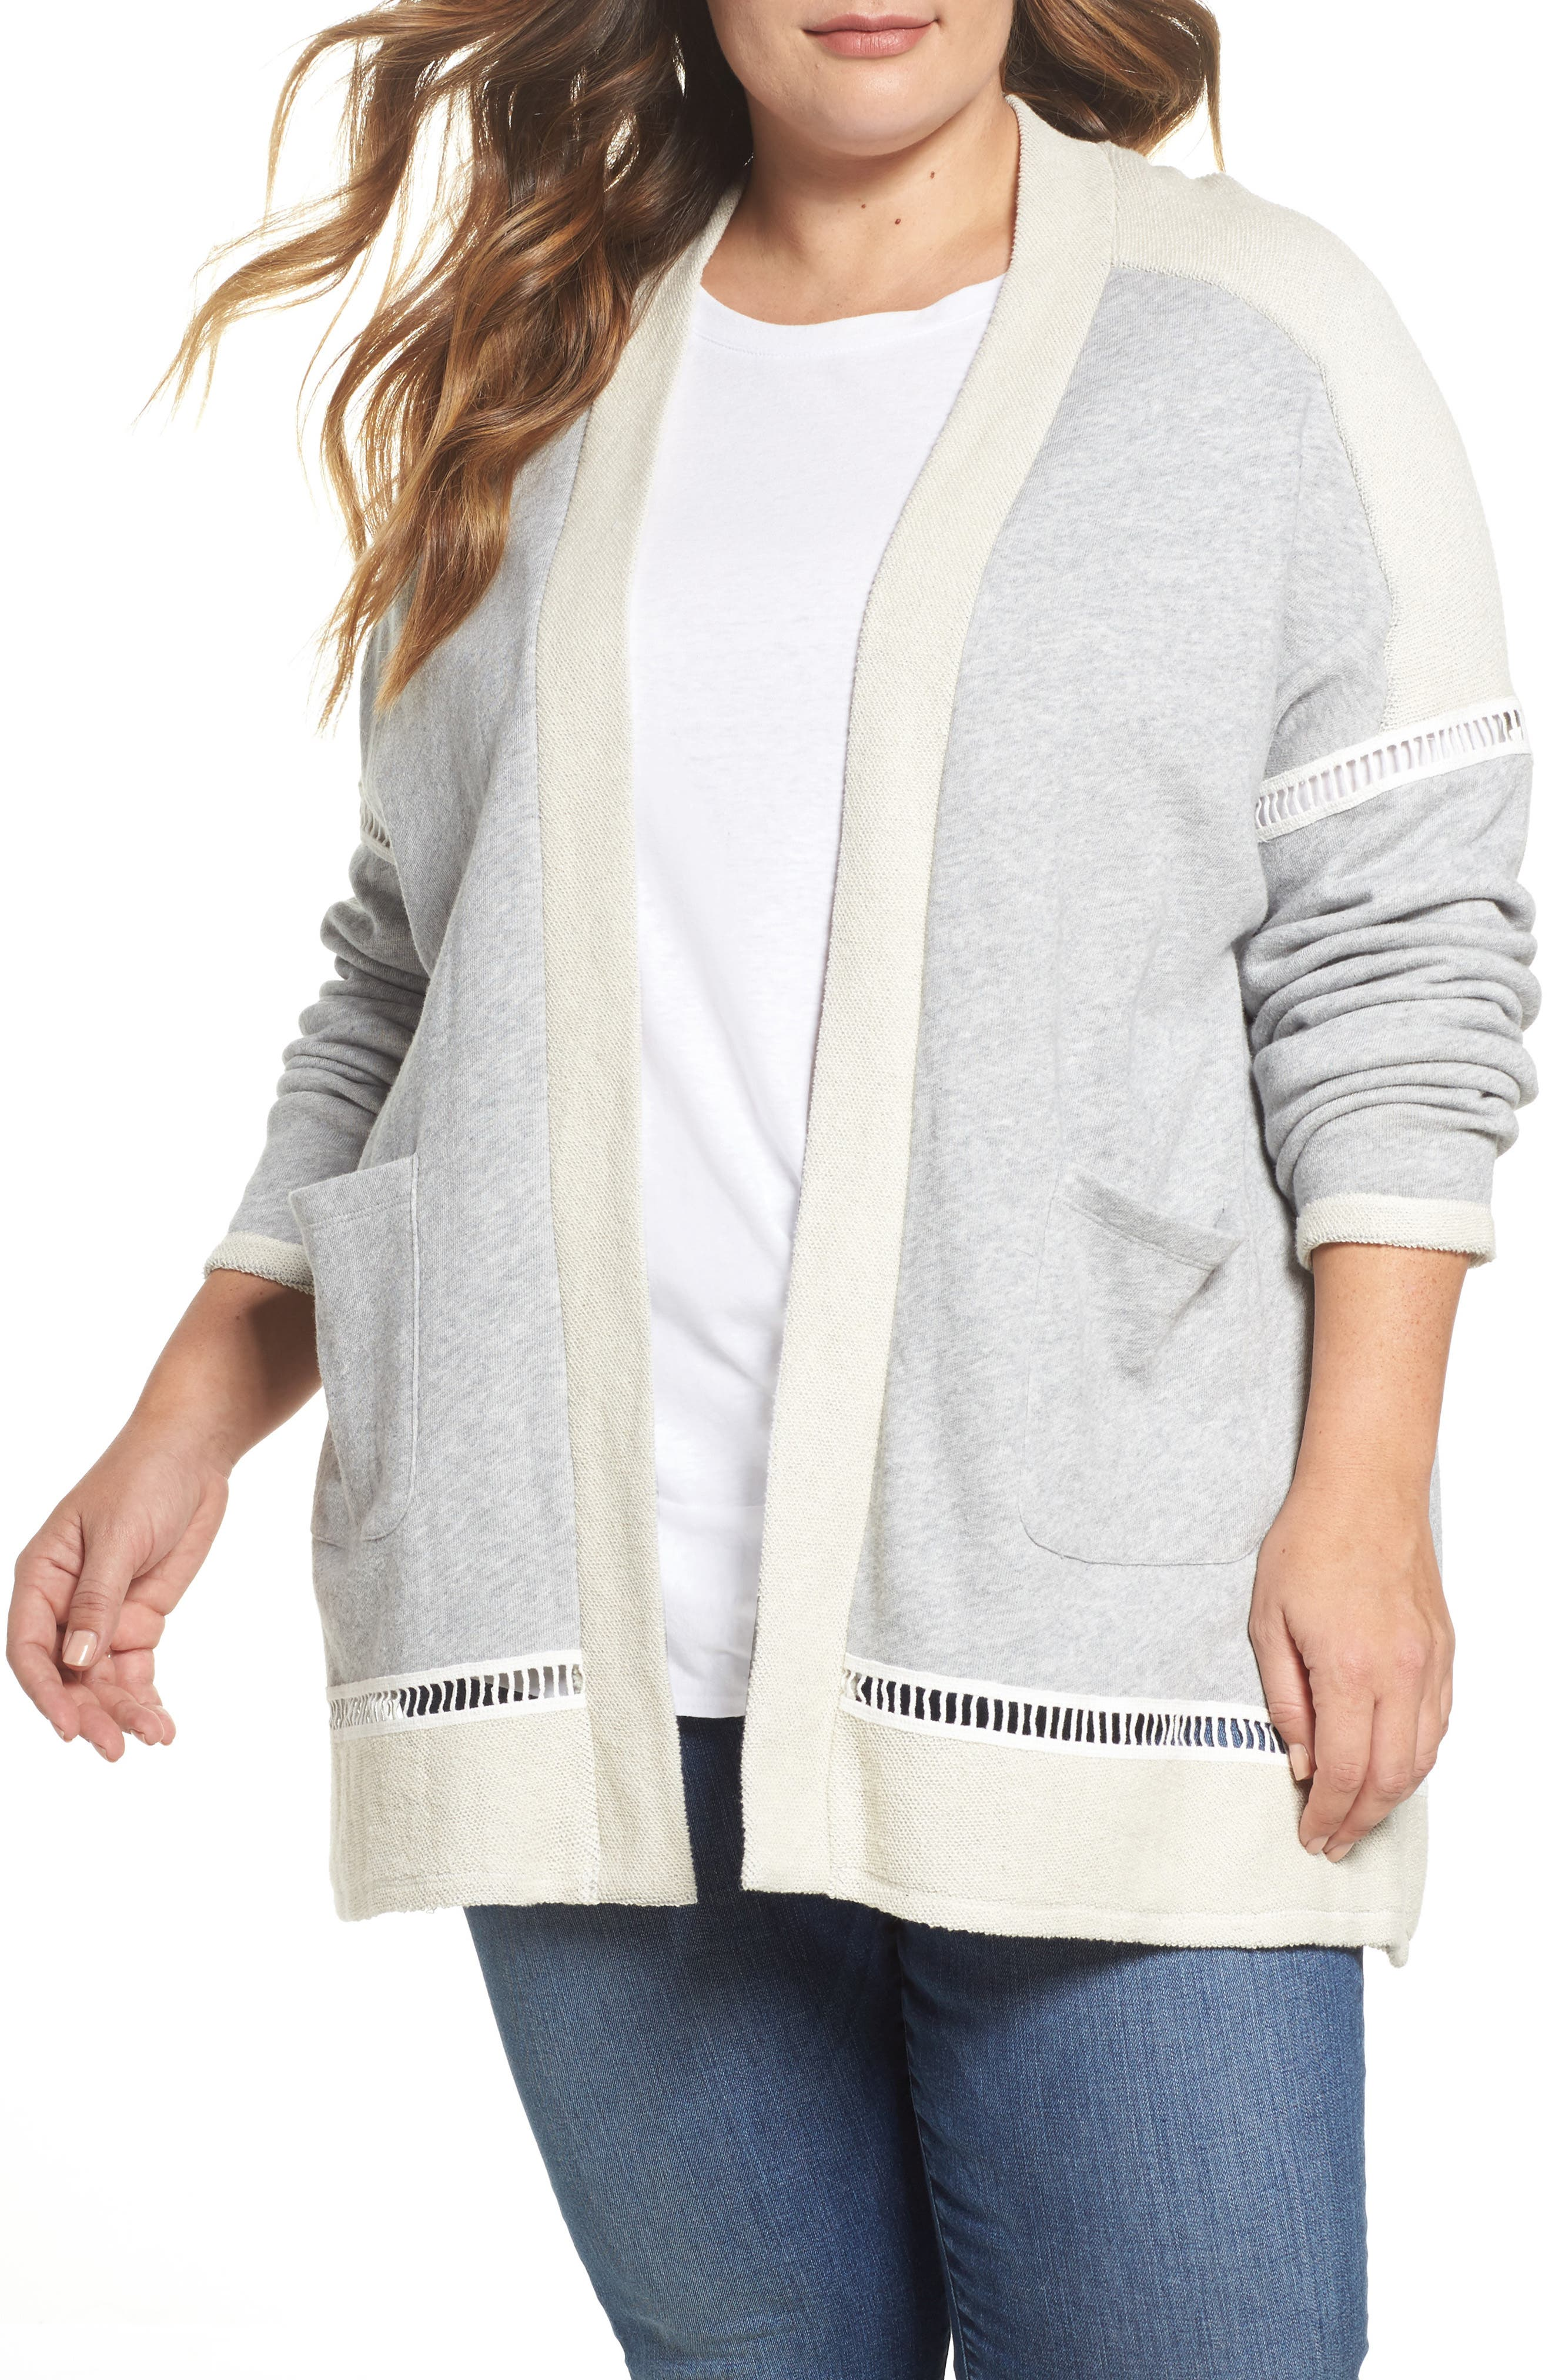 French Terry Cardigan,                         Main,                         color, Grey Heather